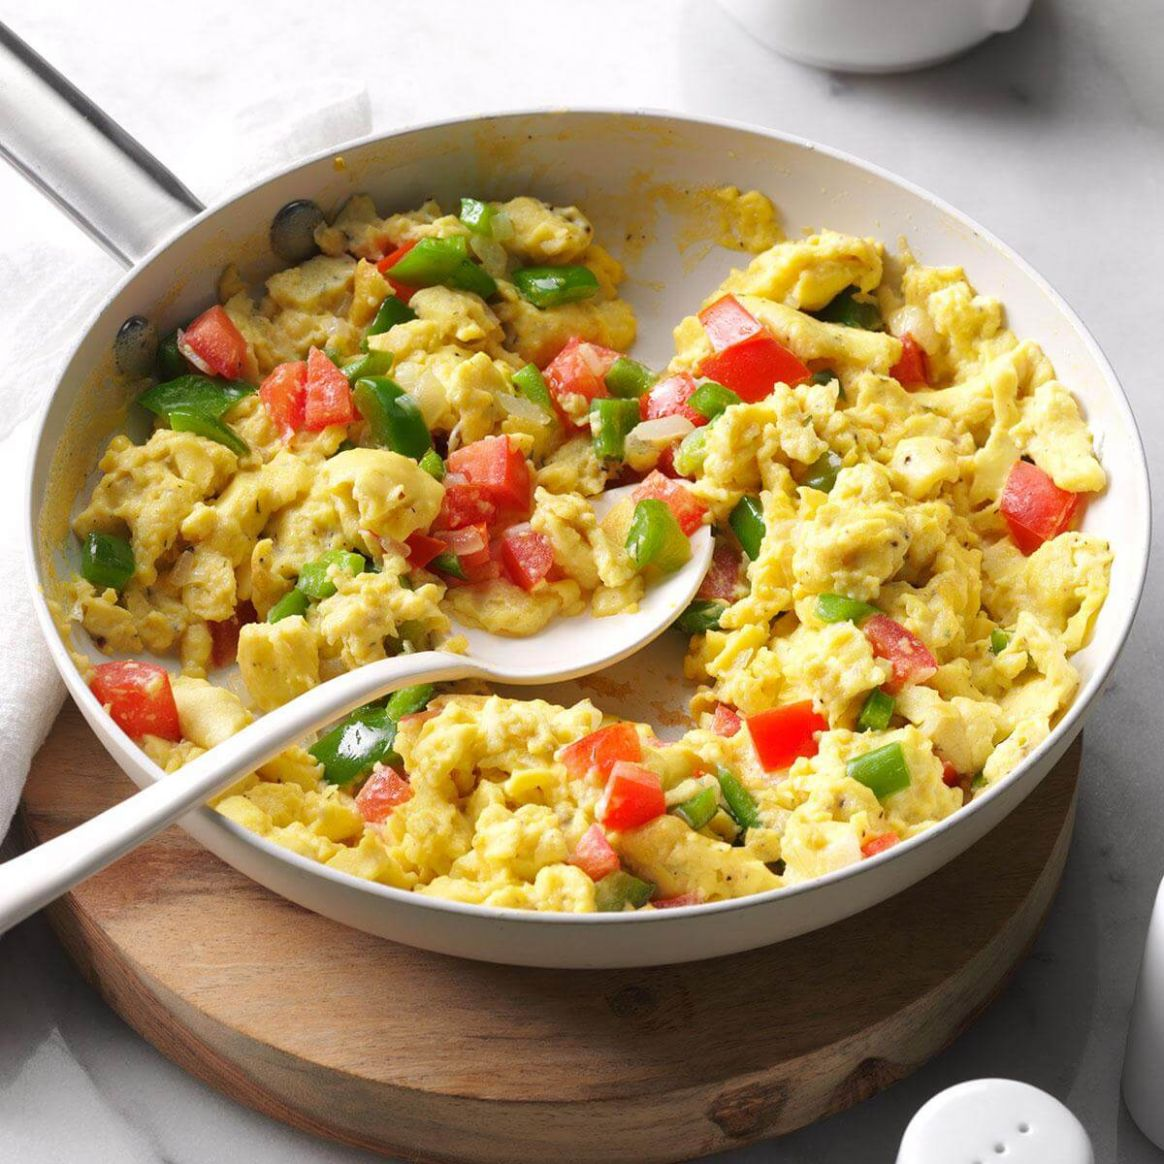 10 Healthy Egg Breakfast Recipes to Make This Morning | Taste of Home - Healthy Recipes With Eggs